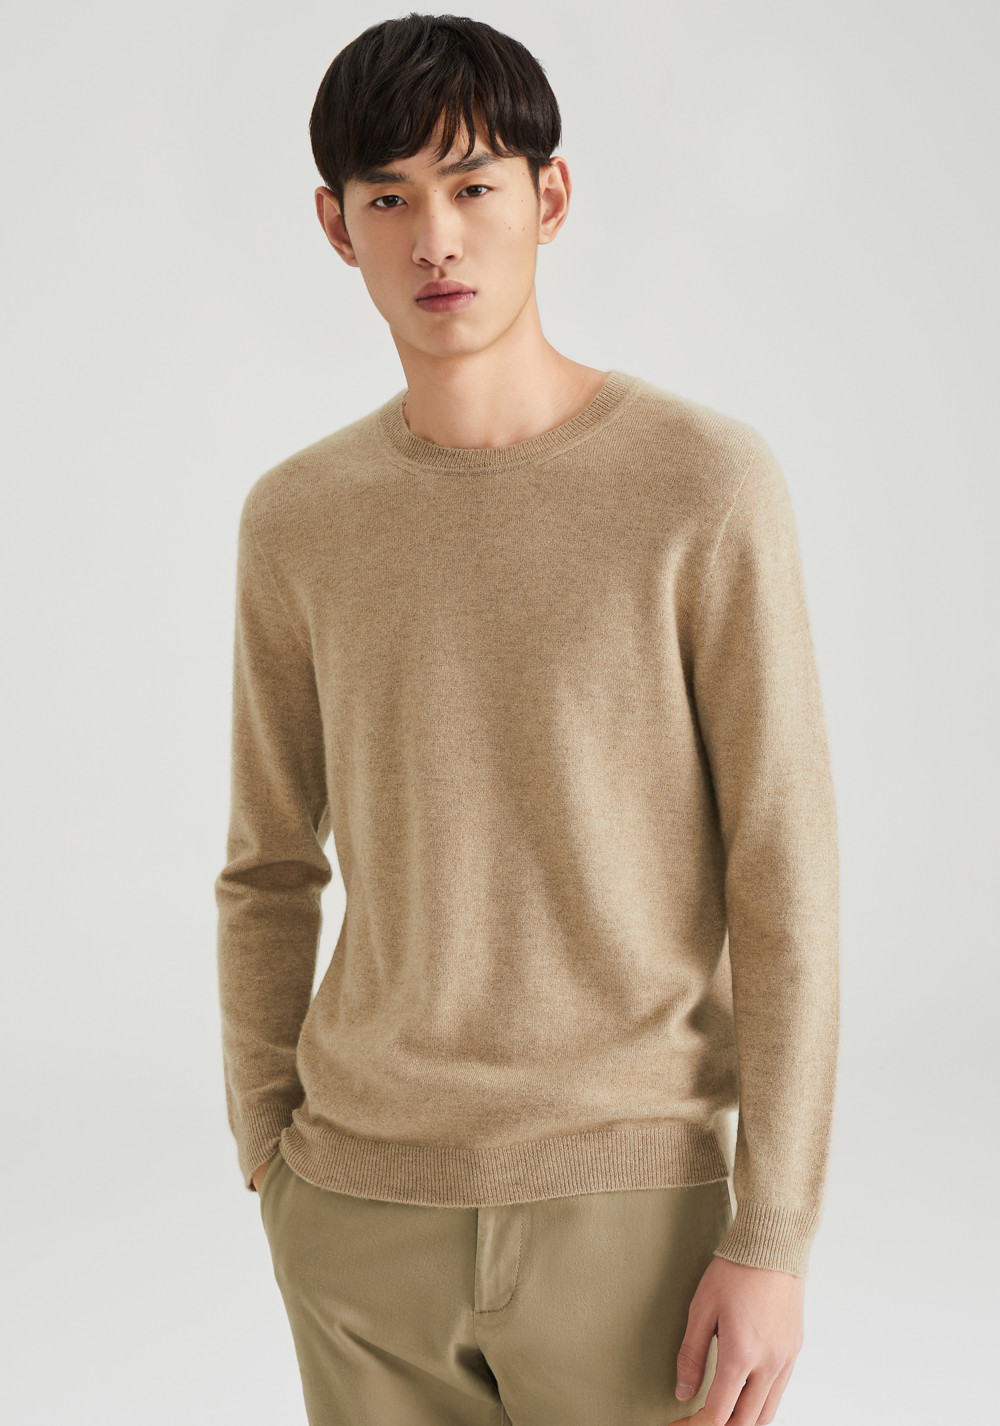 Icicle Men Iconic Seamless Knitwear 01